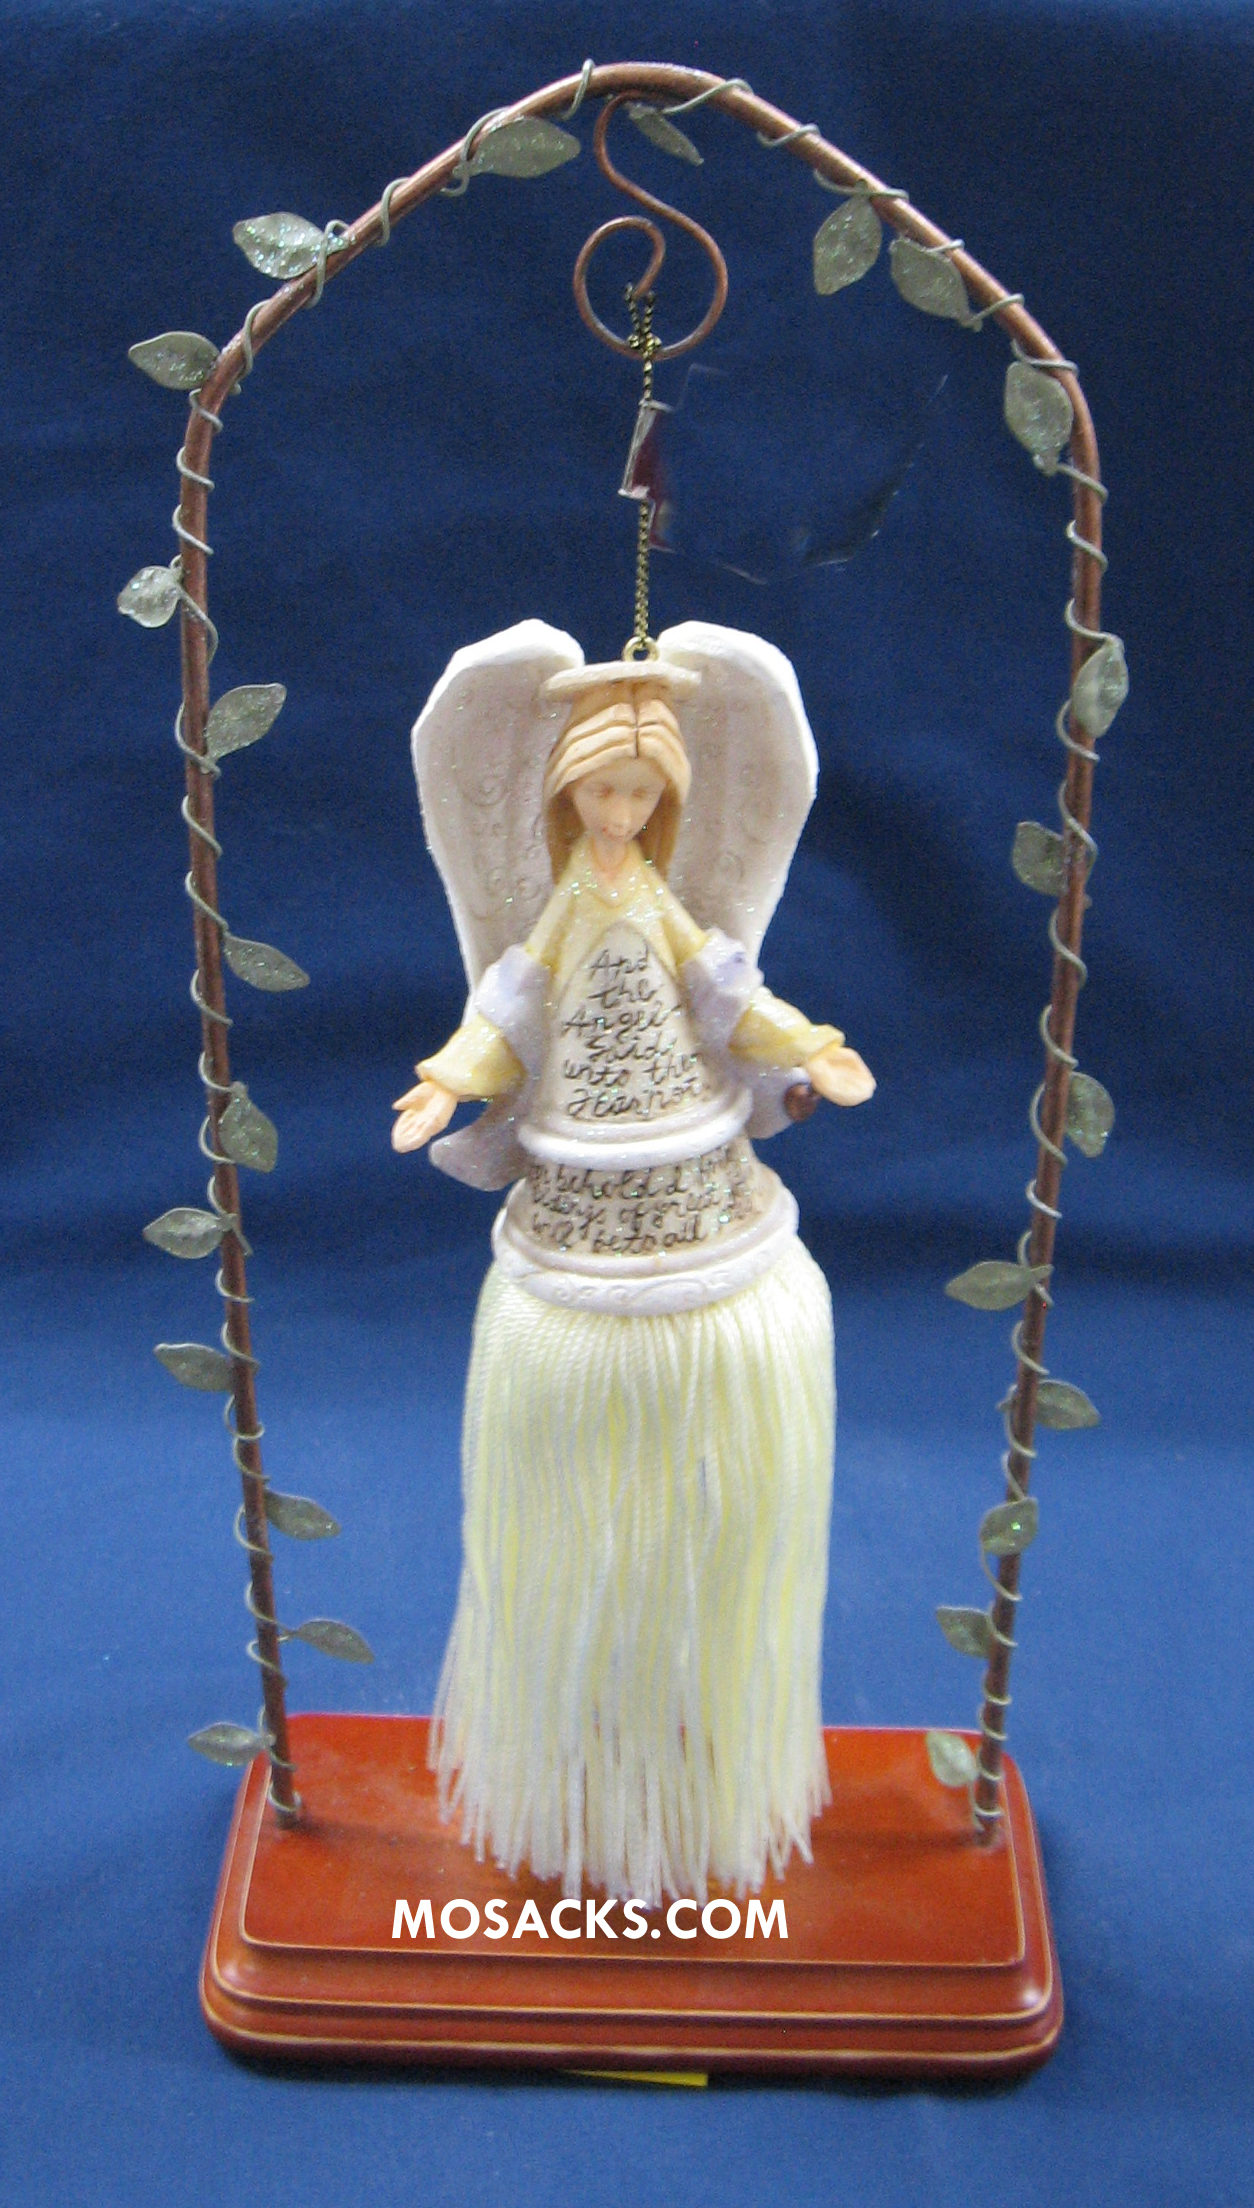 Foundations Ornament Angel With Open Arms 258-112718